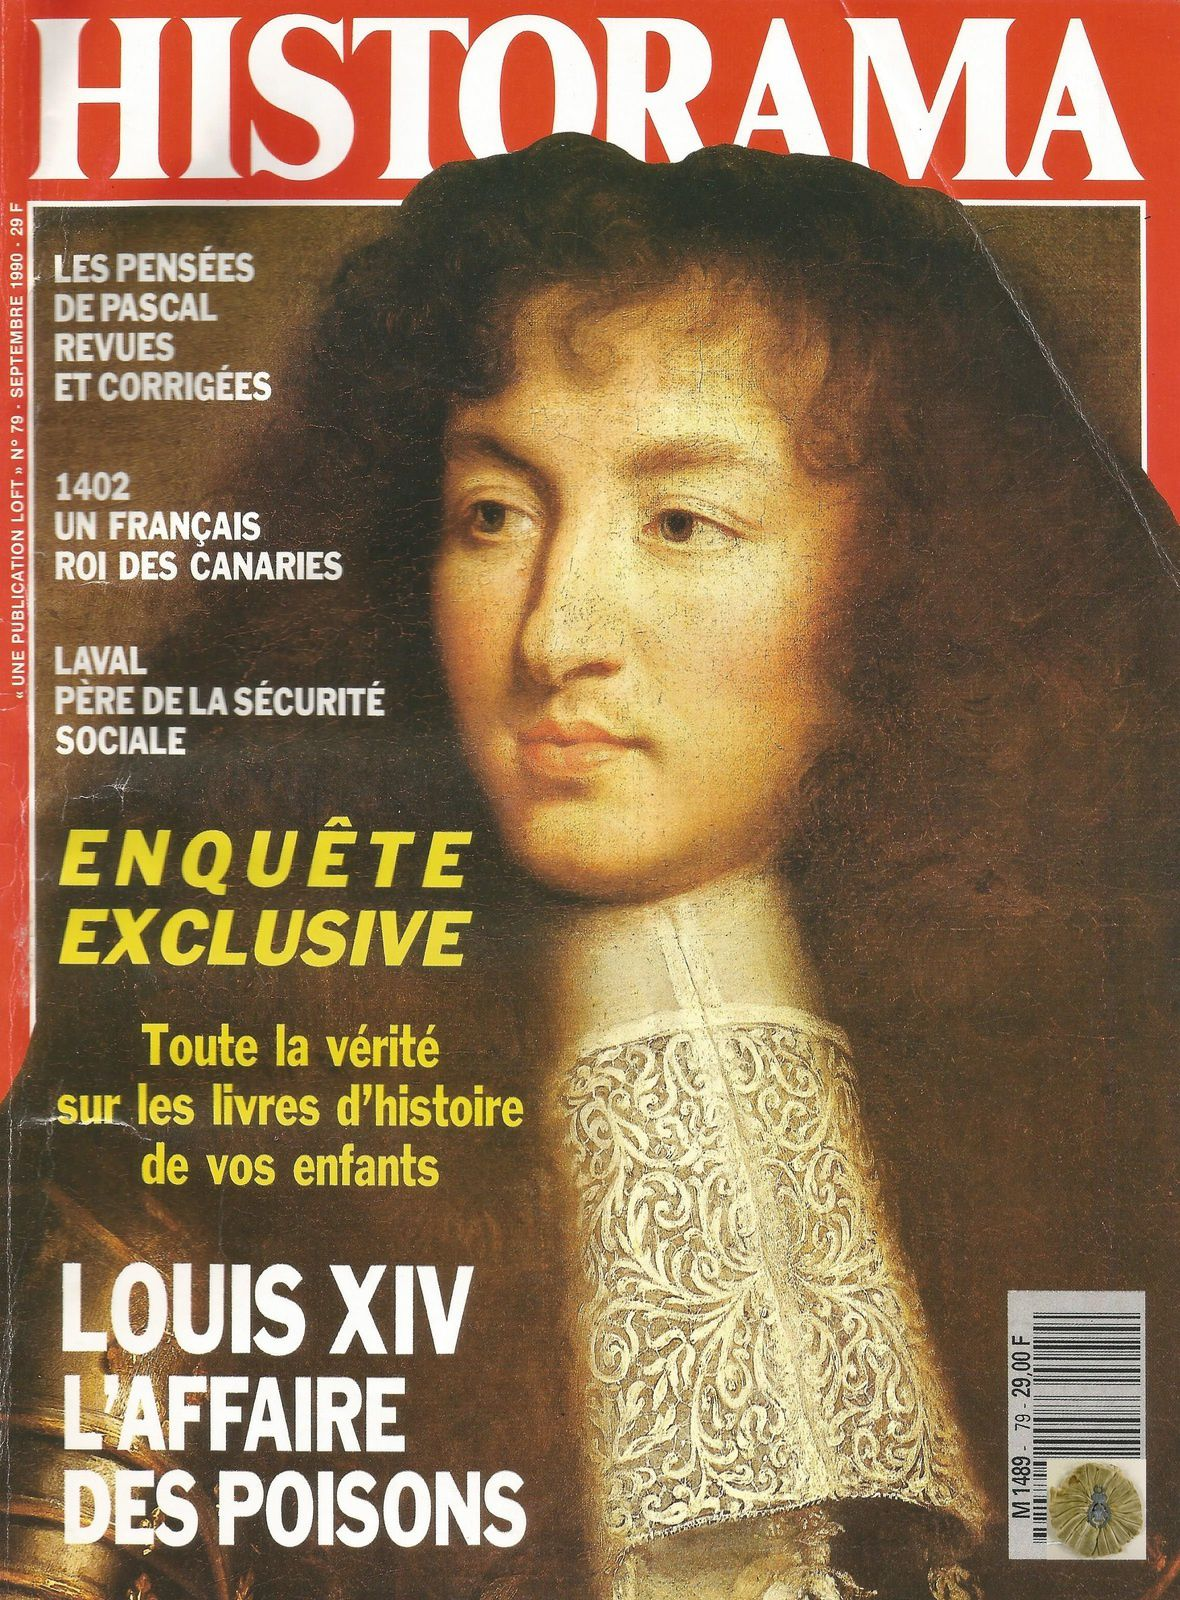 HISTORAMA 79 - COUVERTURE : EXPLORER ARCHIVES